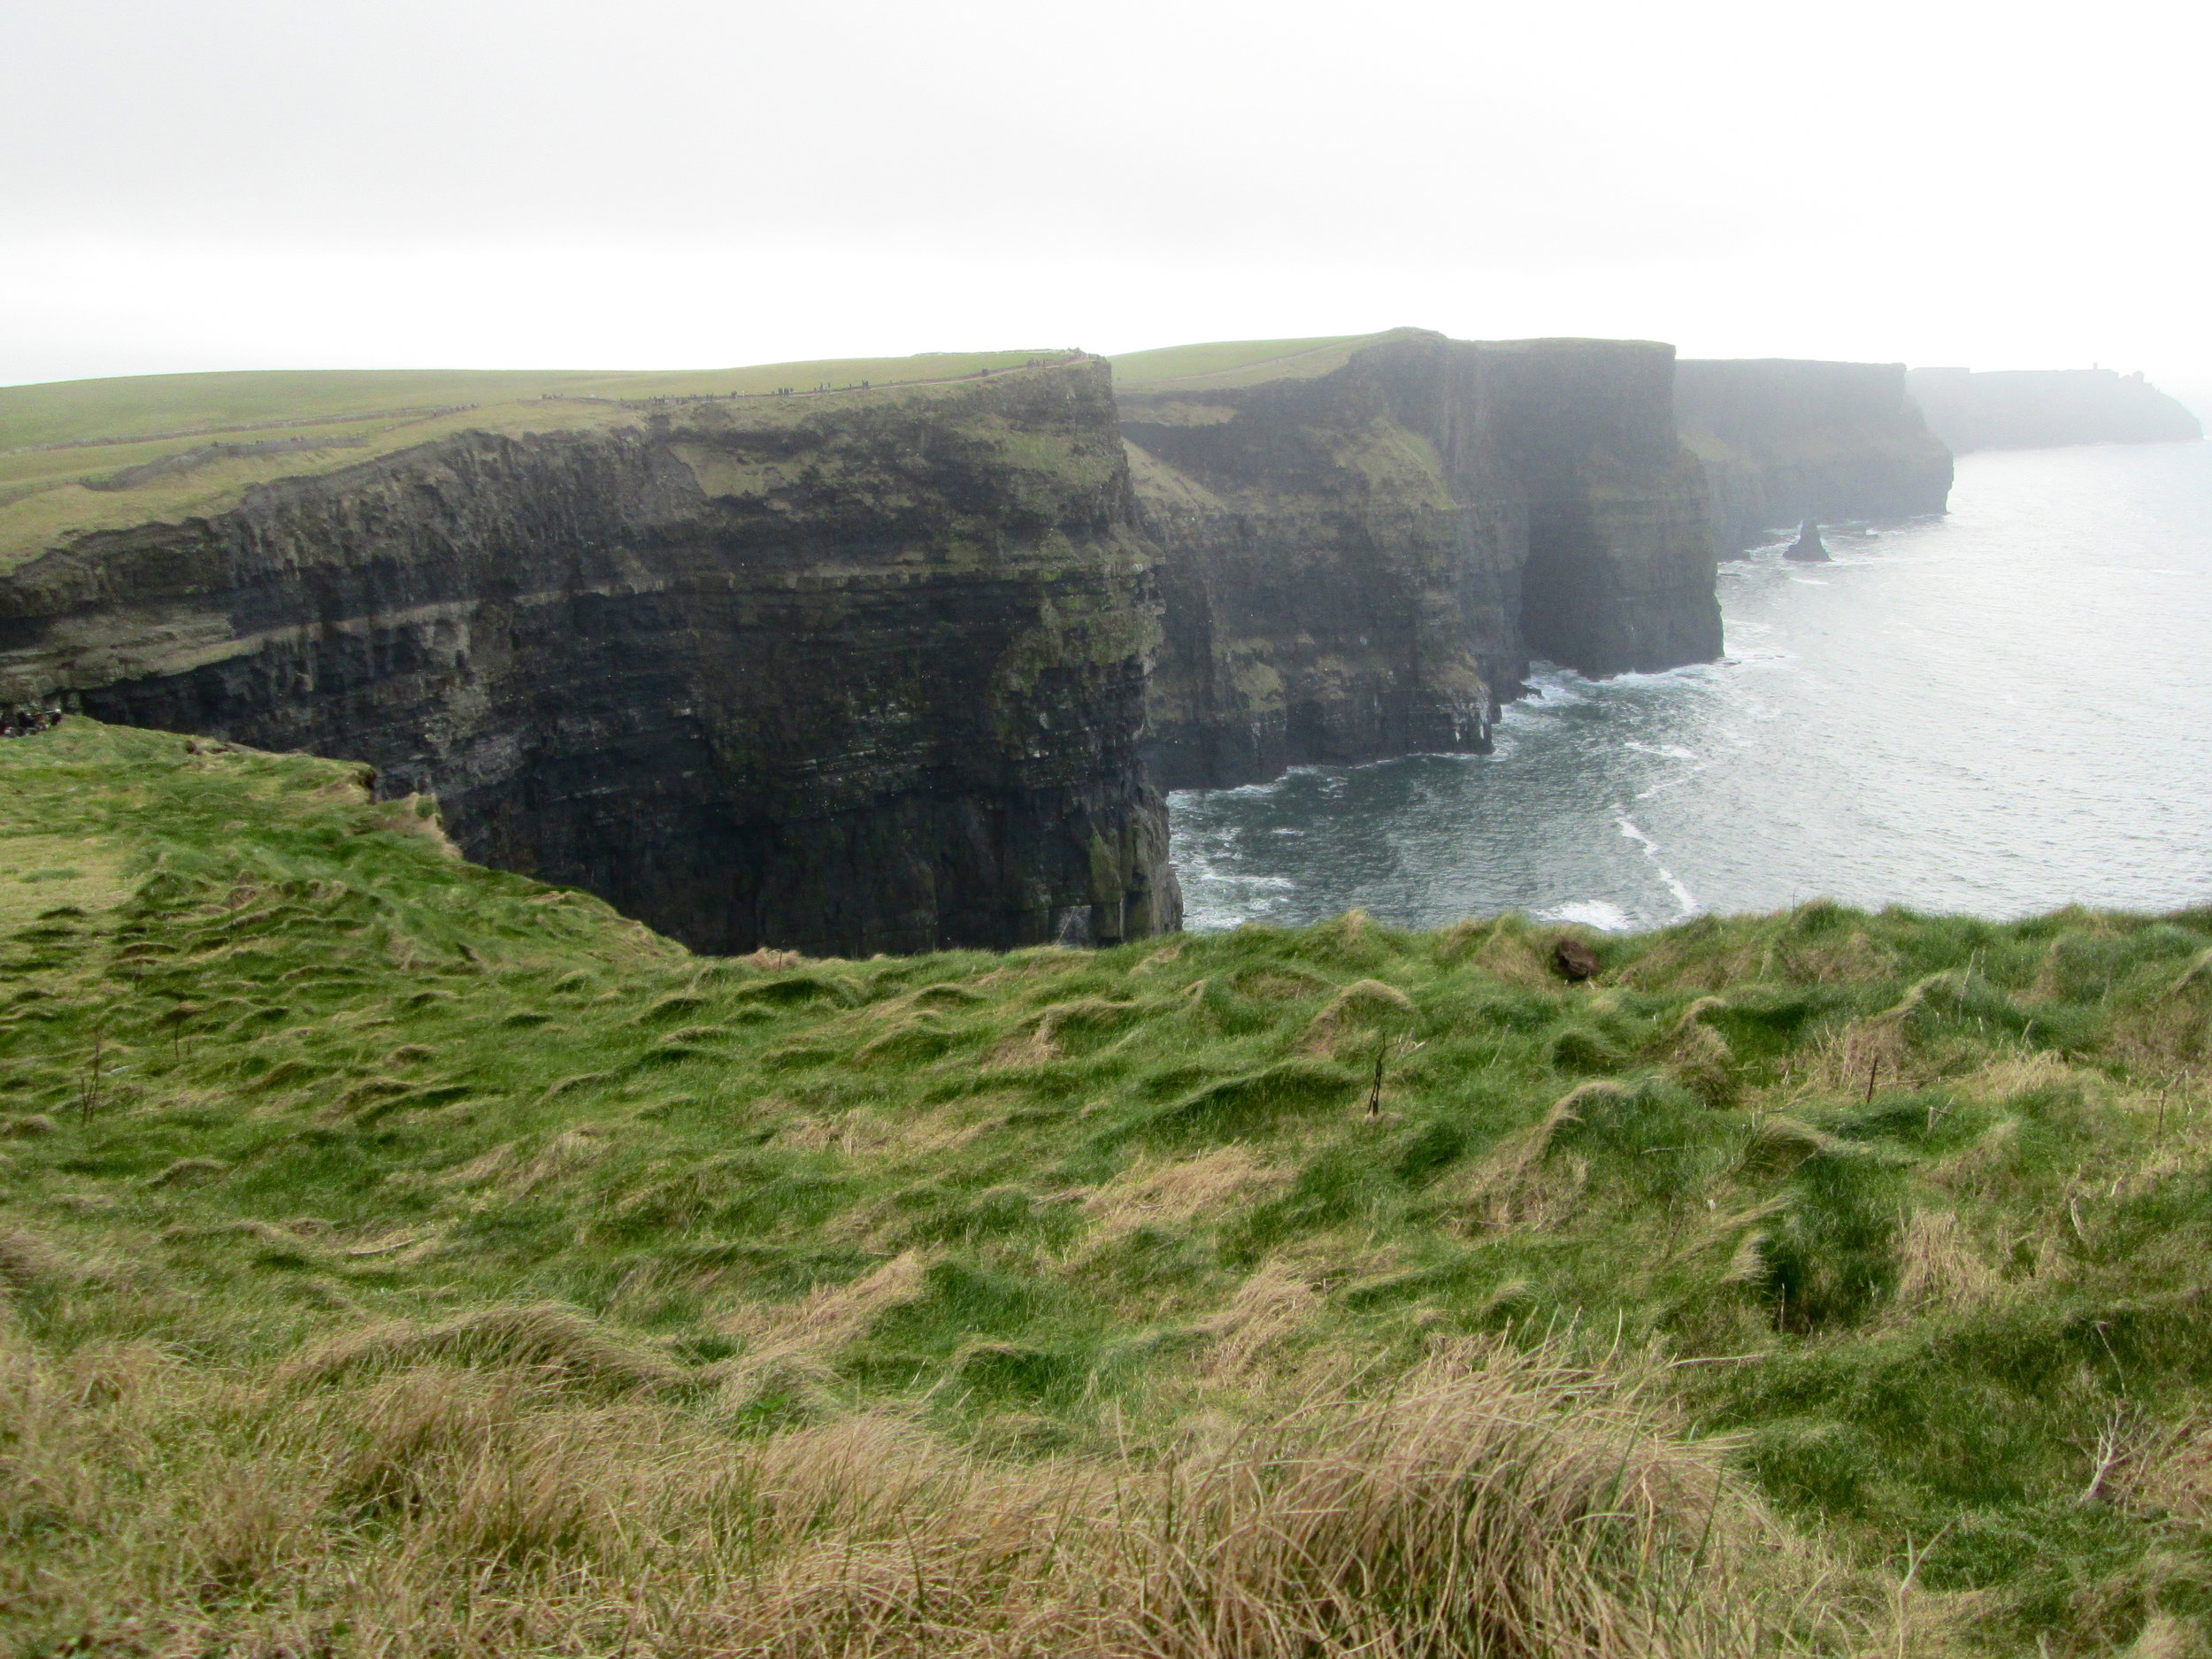 Fog rolling in over the Cliffs of Moher